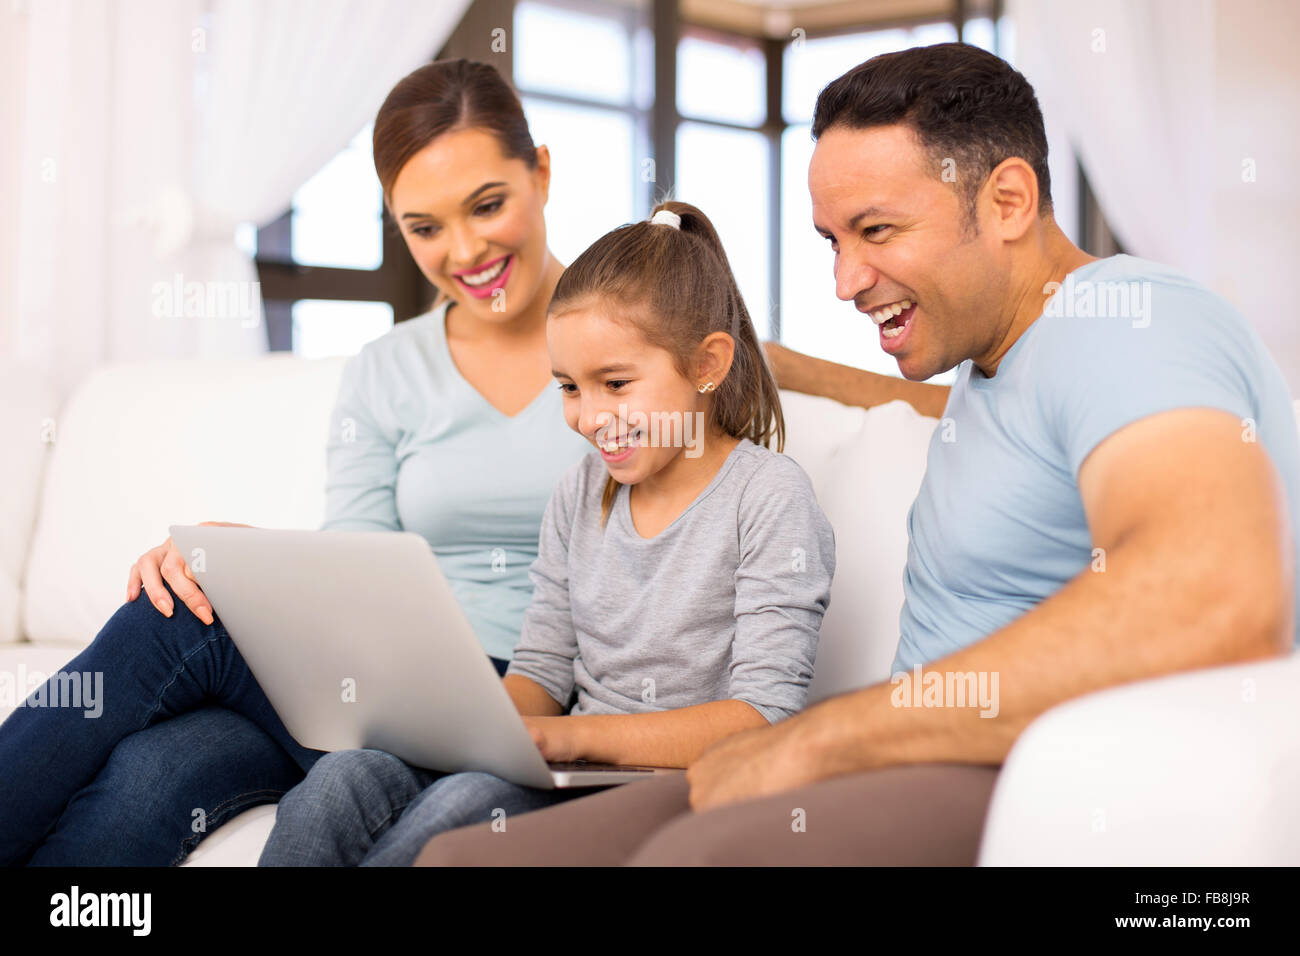 modern family using laptop computer at home - Stock Image